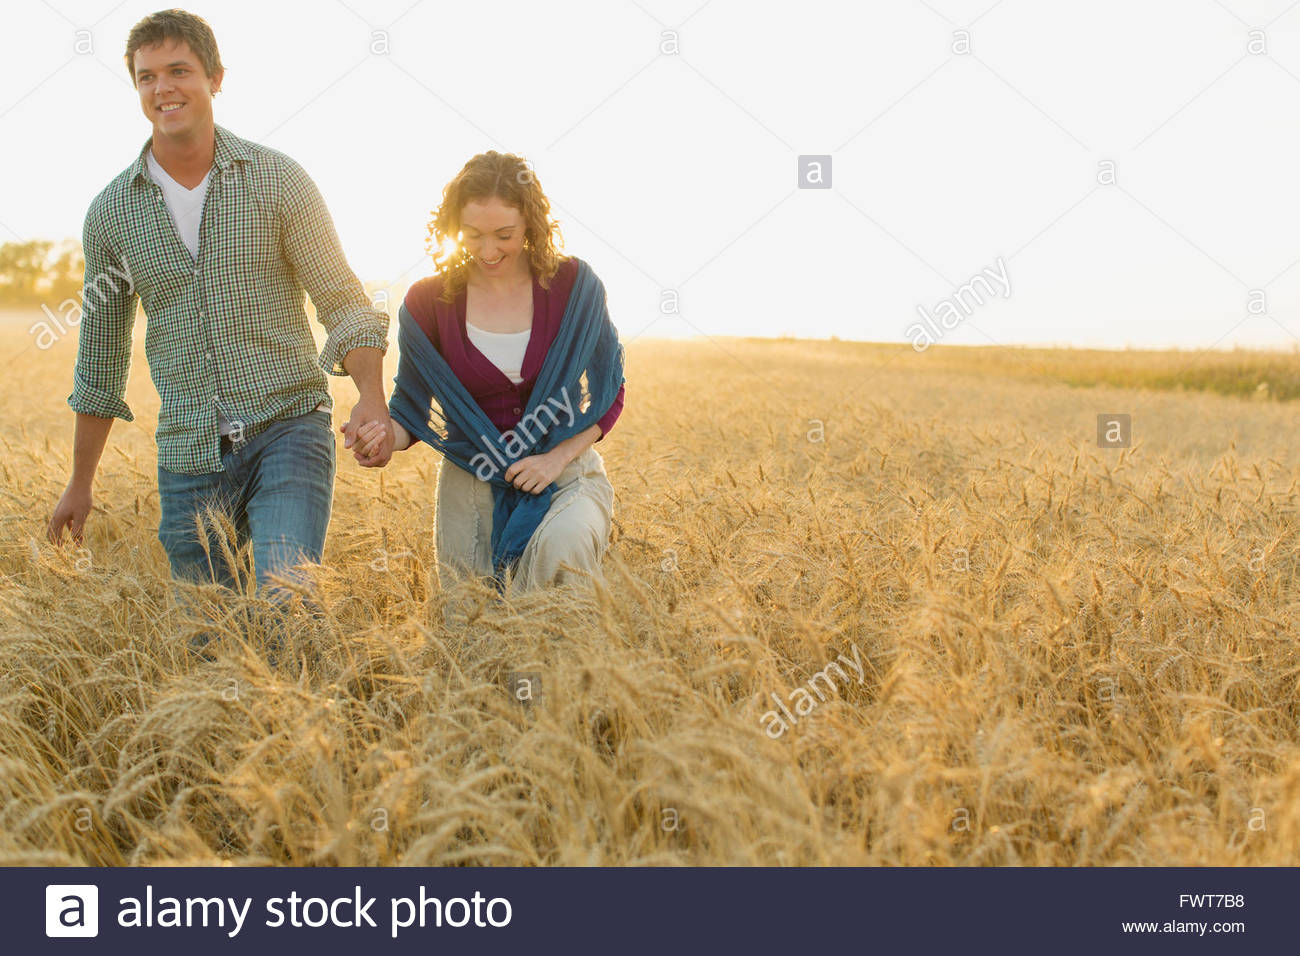 Mid adult couple walking together in wheat field. - Stock Image